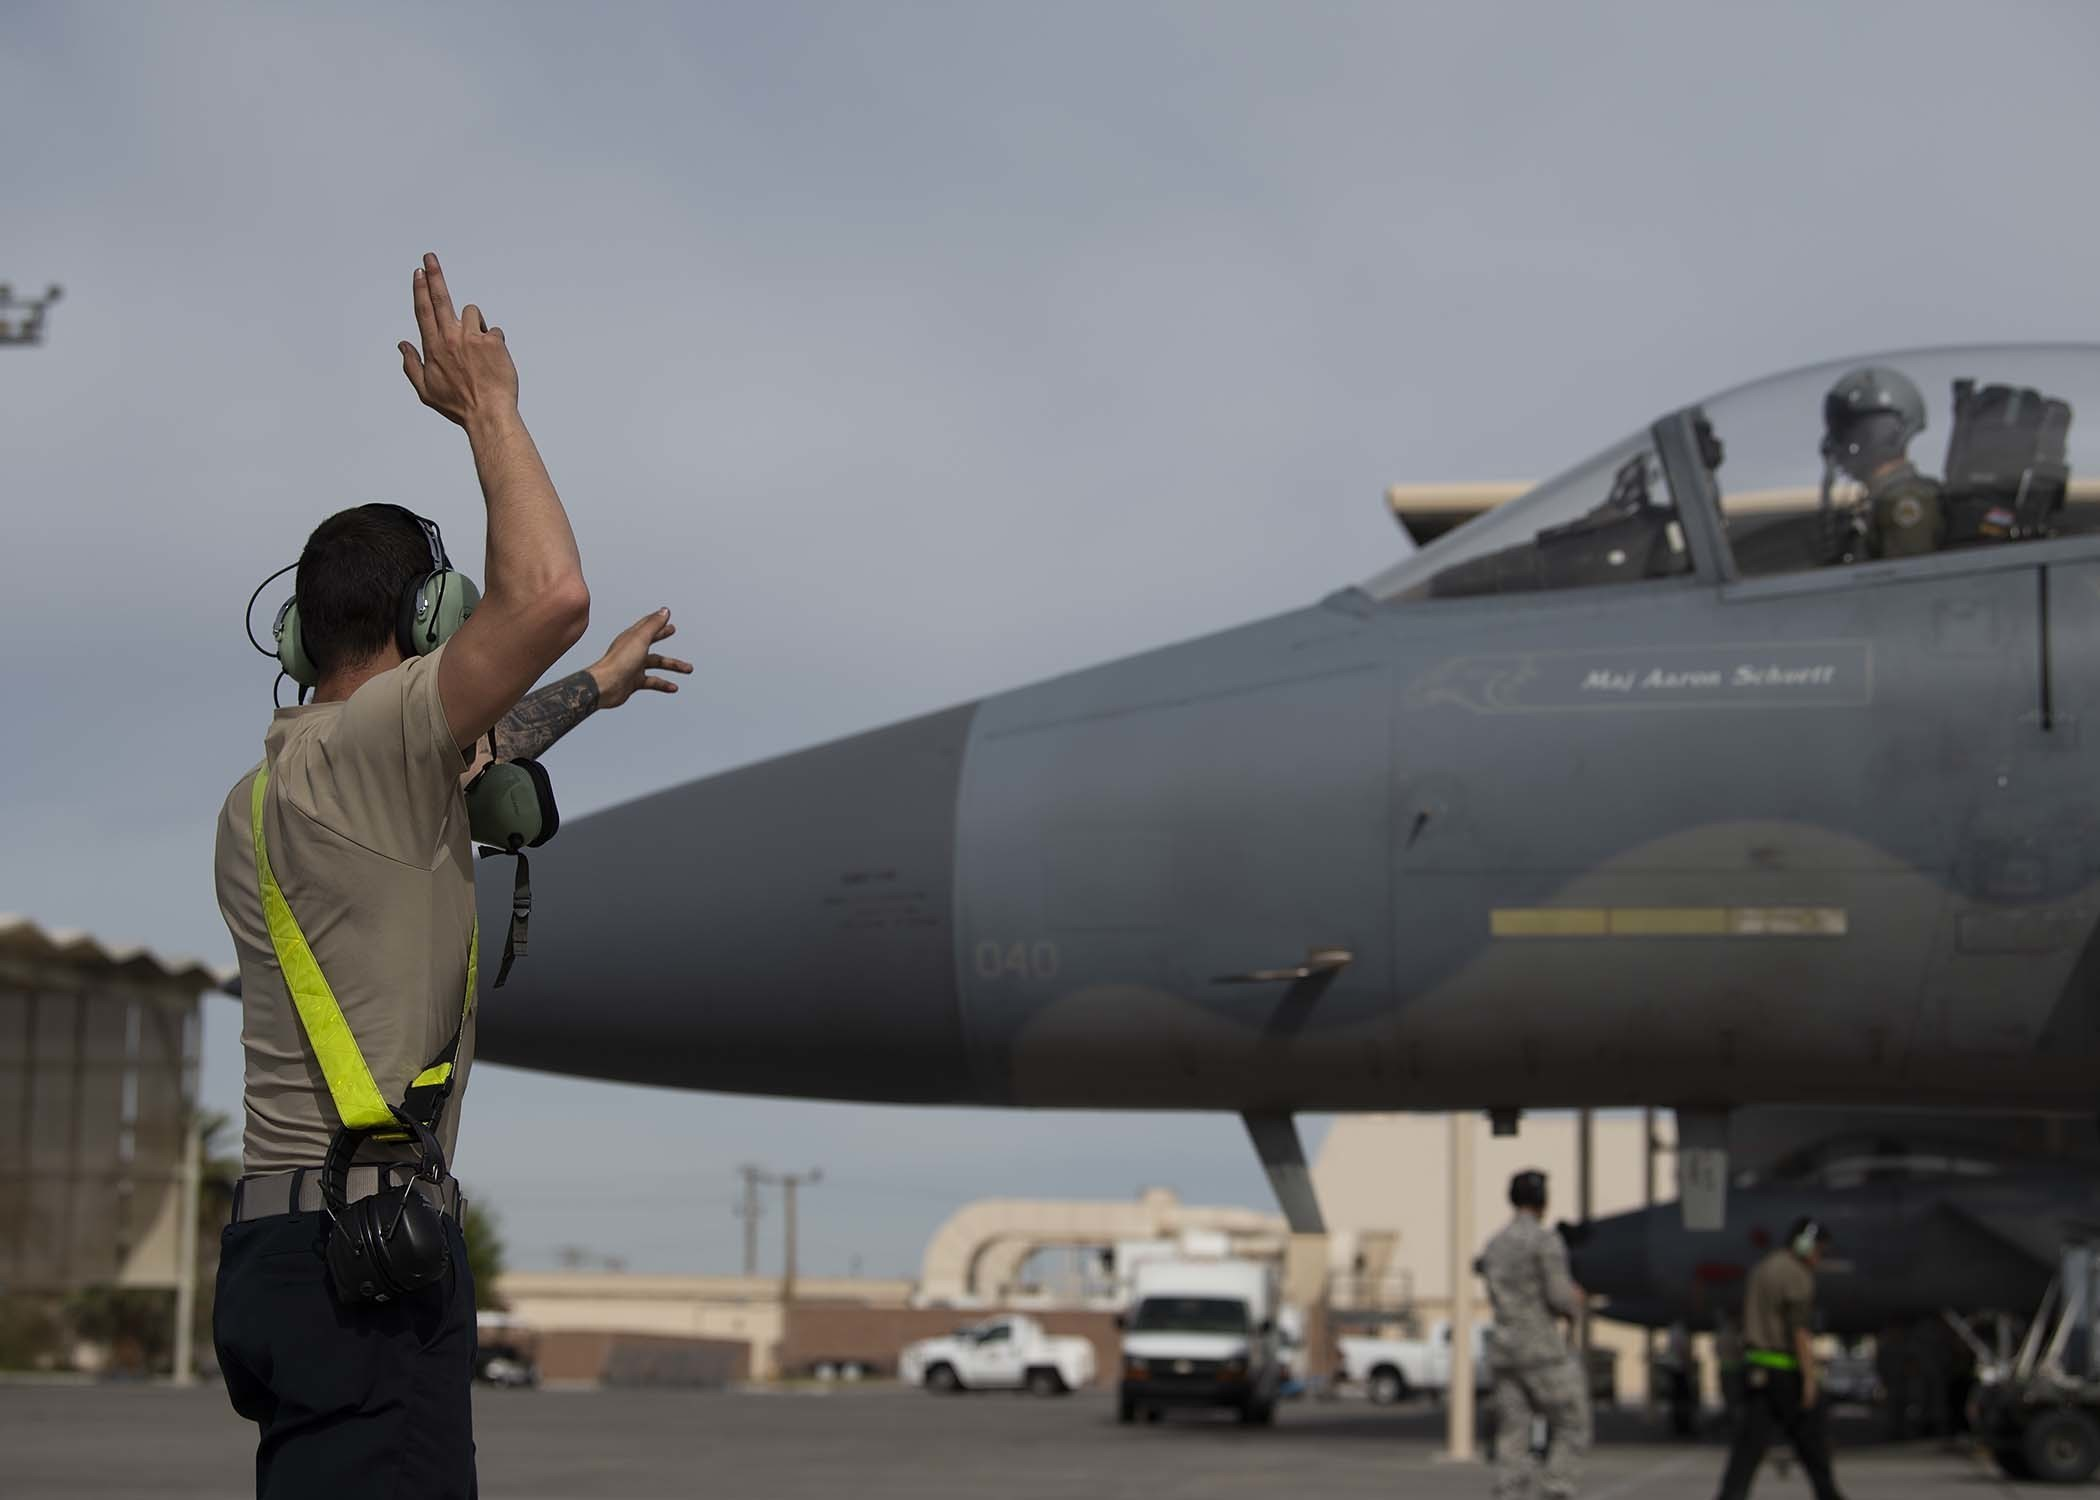 Airman 1st Class Dominik Roeglin, 757th Aircraft Maintenance Squadron crew chief, sends off an F-15C pilot at Nellis Air Force Base, Nev., April 8, 2019. The Air Force is buying the F-15EX jets to replace its oldest F-15C/Ds (Airman 1st Class Bryan Guthrie/U.S. Air Force)